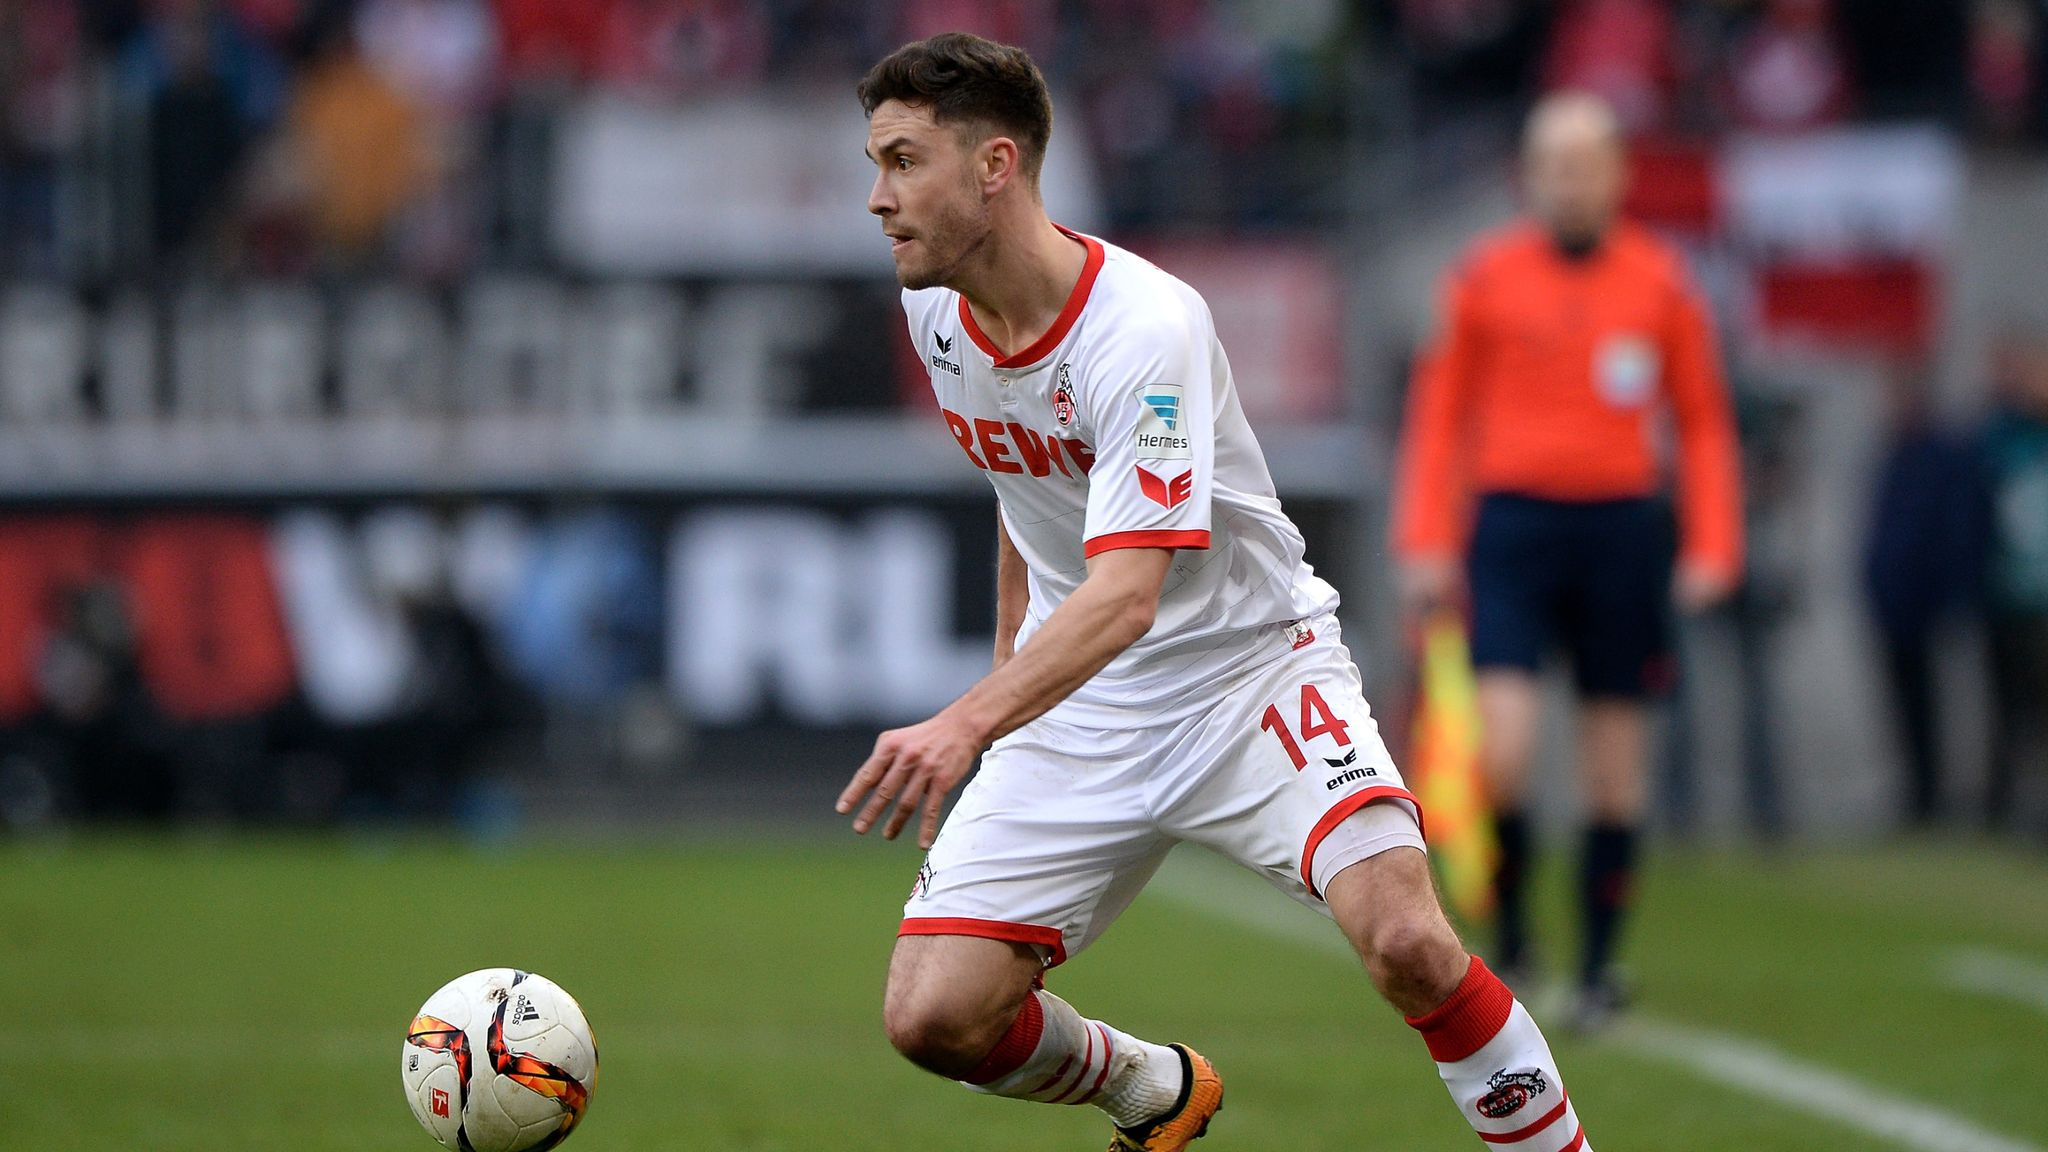 Jonas Venlo Jurgen Klopp Could Tempt Me To Liverpool Hints Jonas Hector